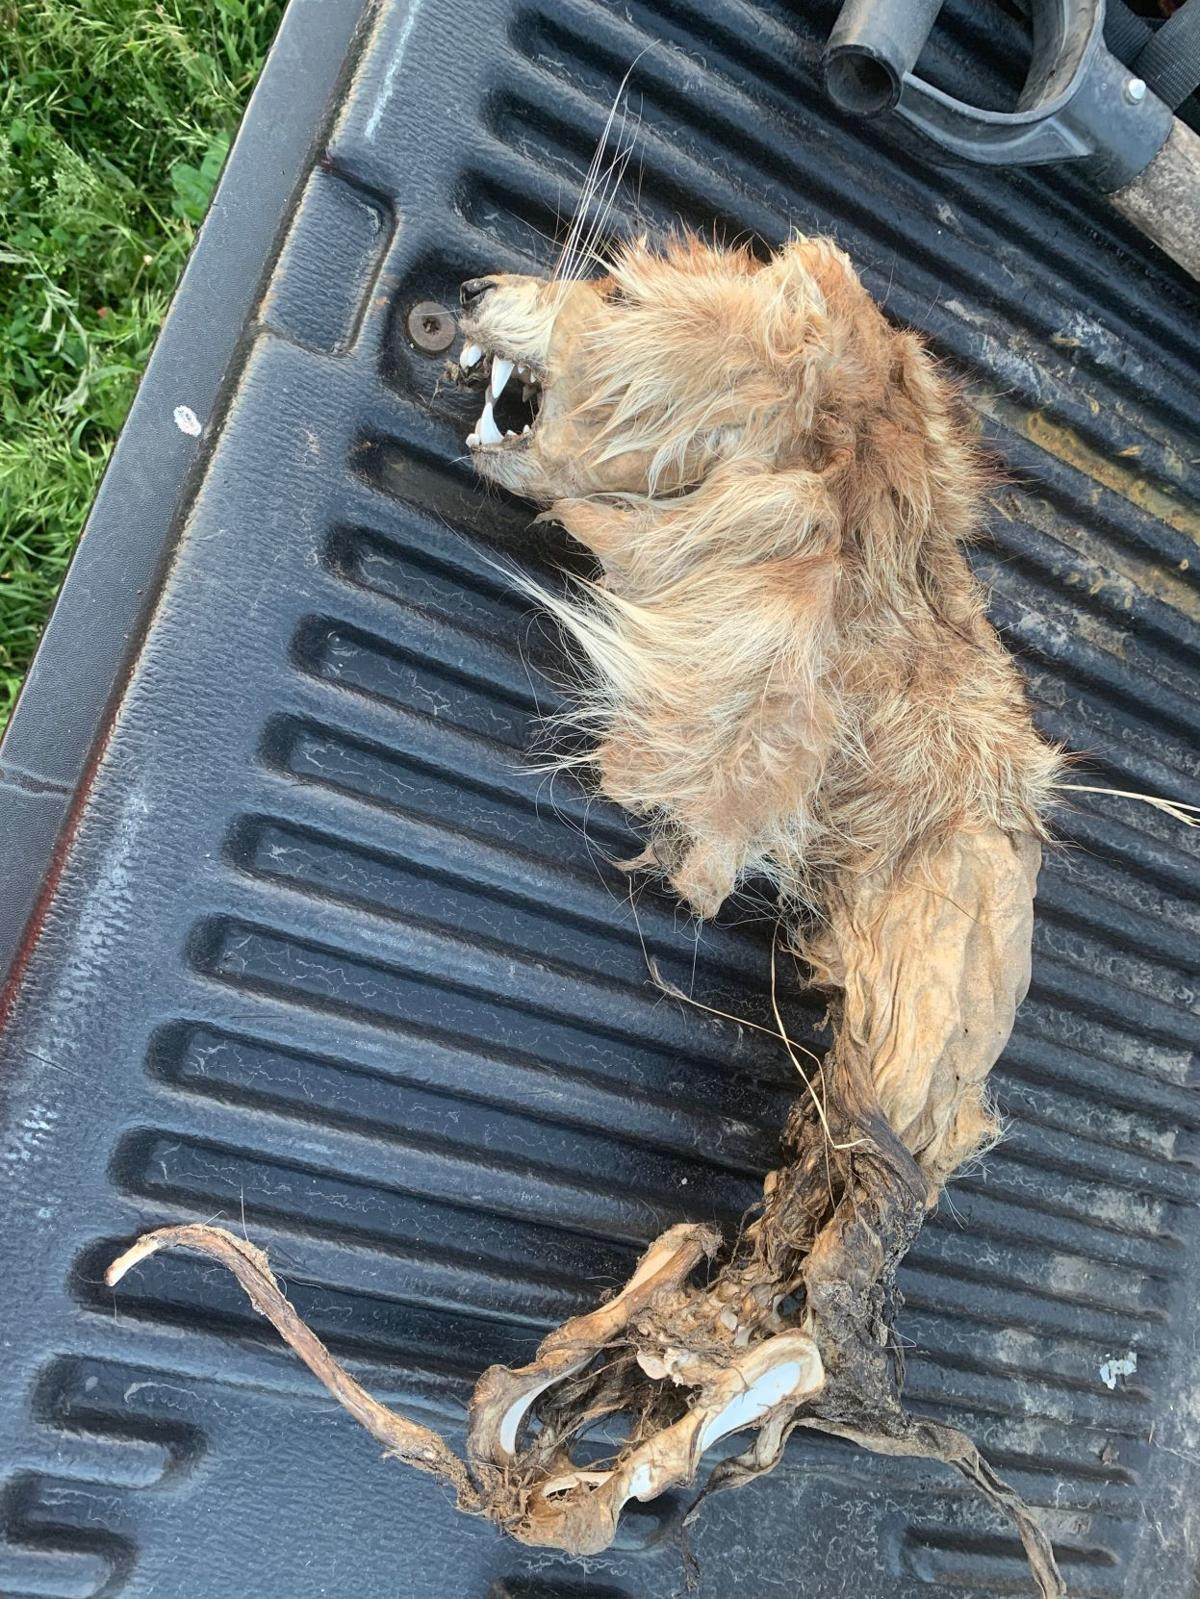 Viral photo of unidentified dead animal confirmed a raccoon